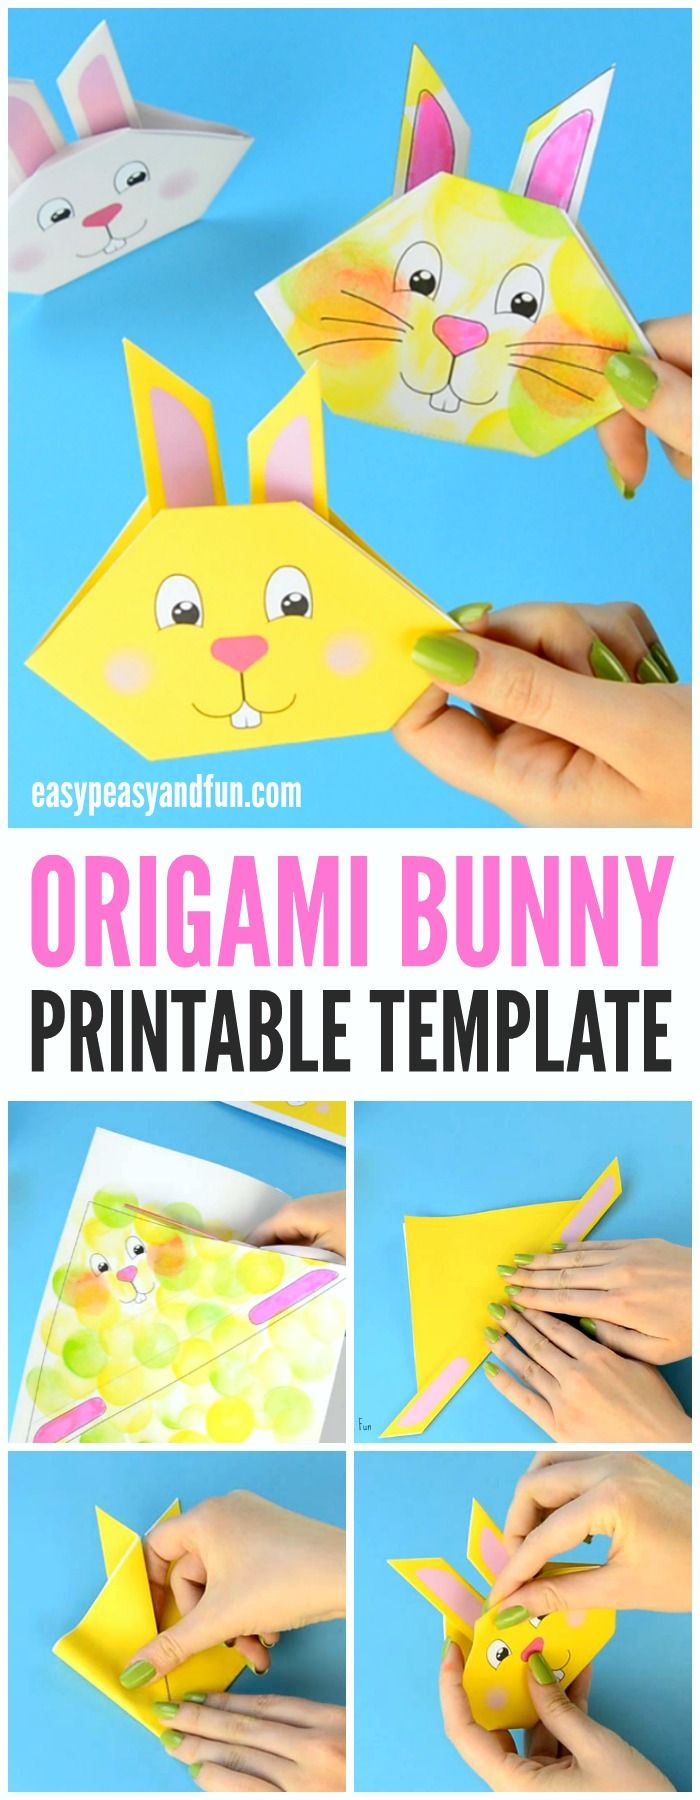 Origami Bunny Tutorial With Printable Template